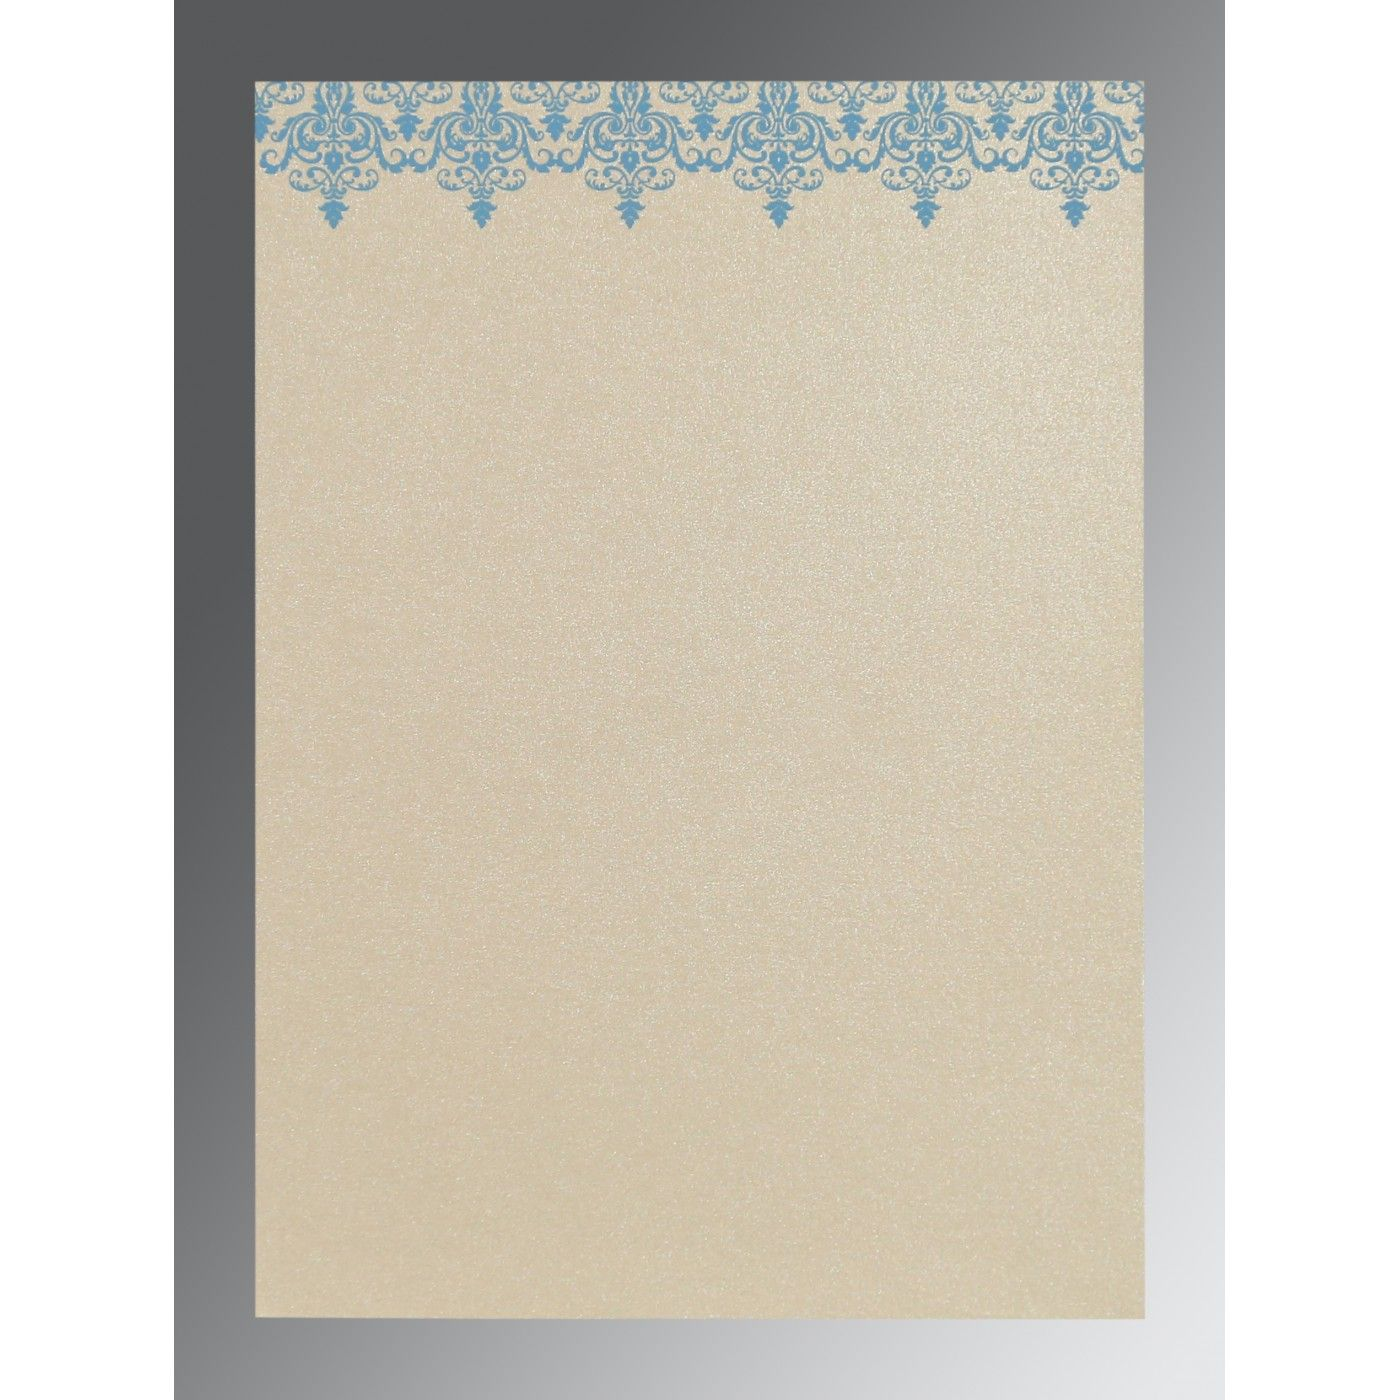 TURQUOISE SHIMMERY SCREEN PRINTED WEDDING CARD : CIN-8244F - IndianWeddingCards